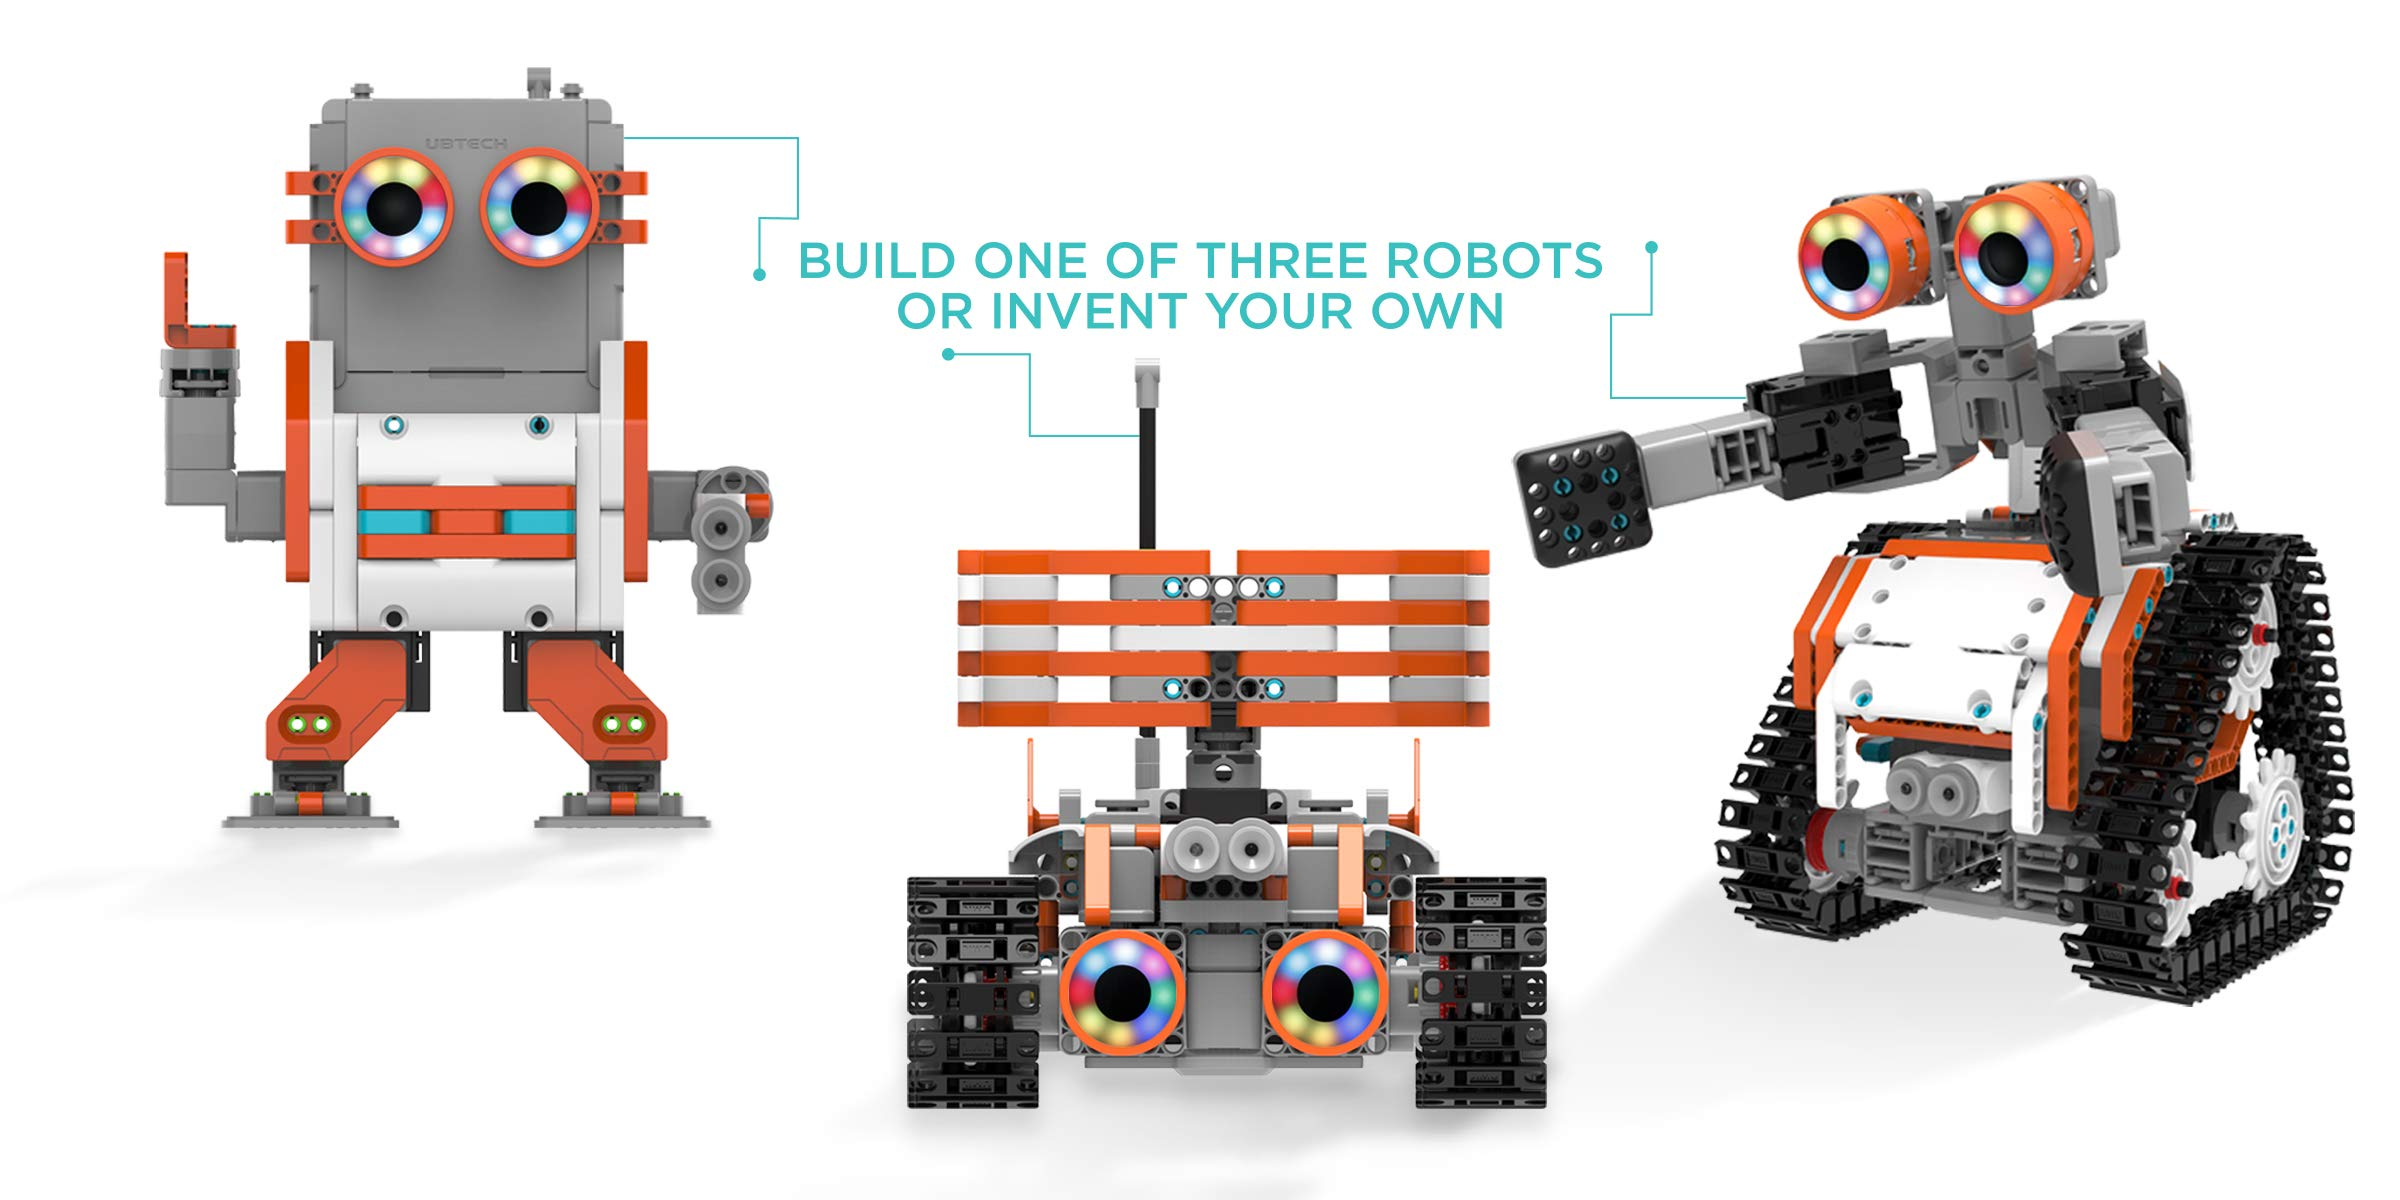 UBTECH JIMU Robot Astrobot Series: Cosmos Kit / App-Enabled Building and Coding STEM Learning Kit (387 Parts and Connectors) by UBTECH (Image #9)